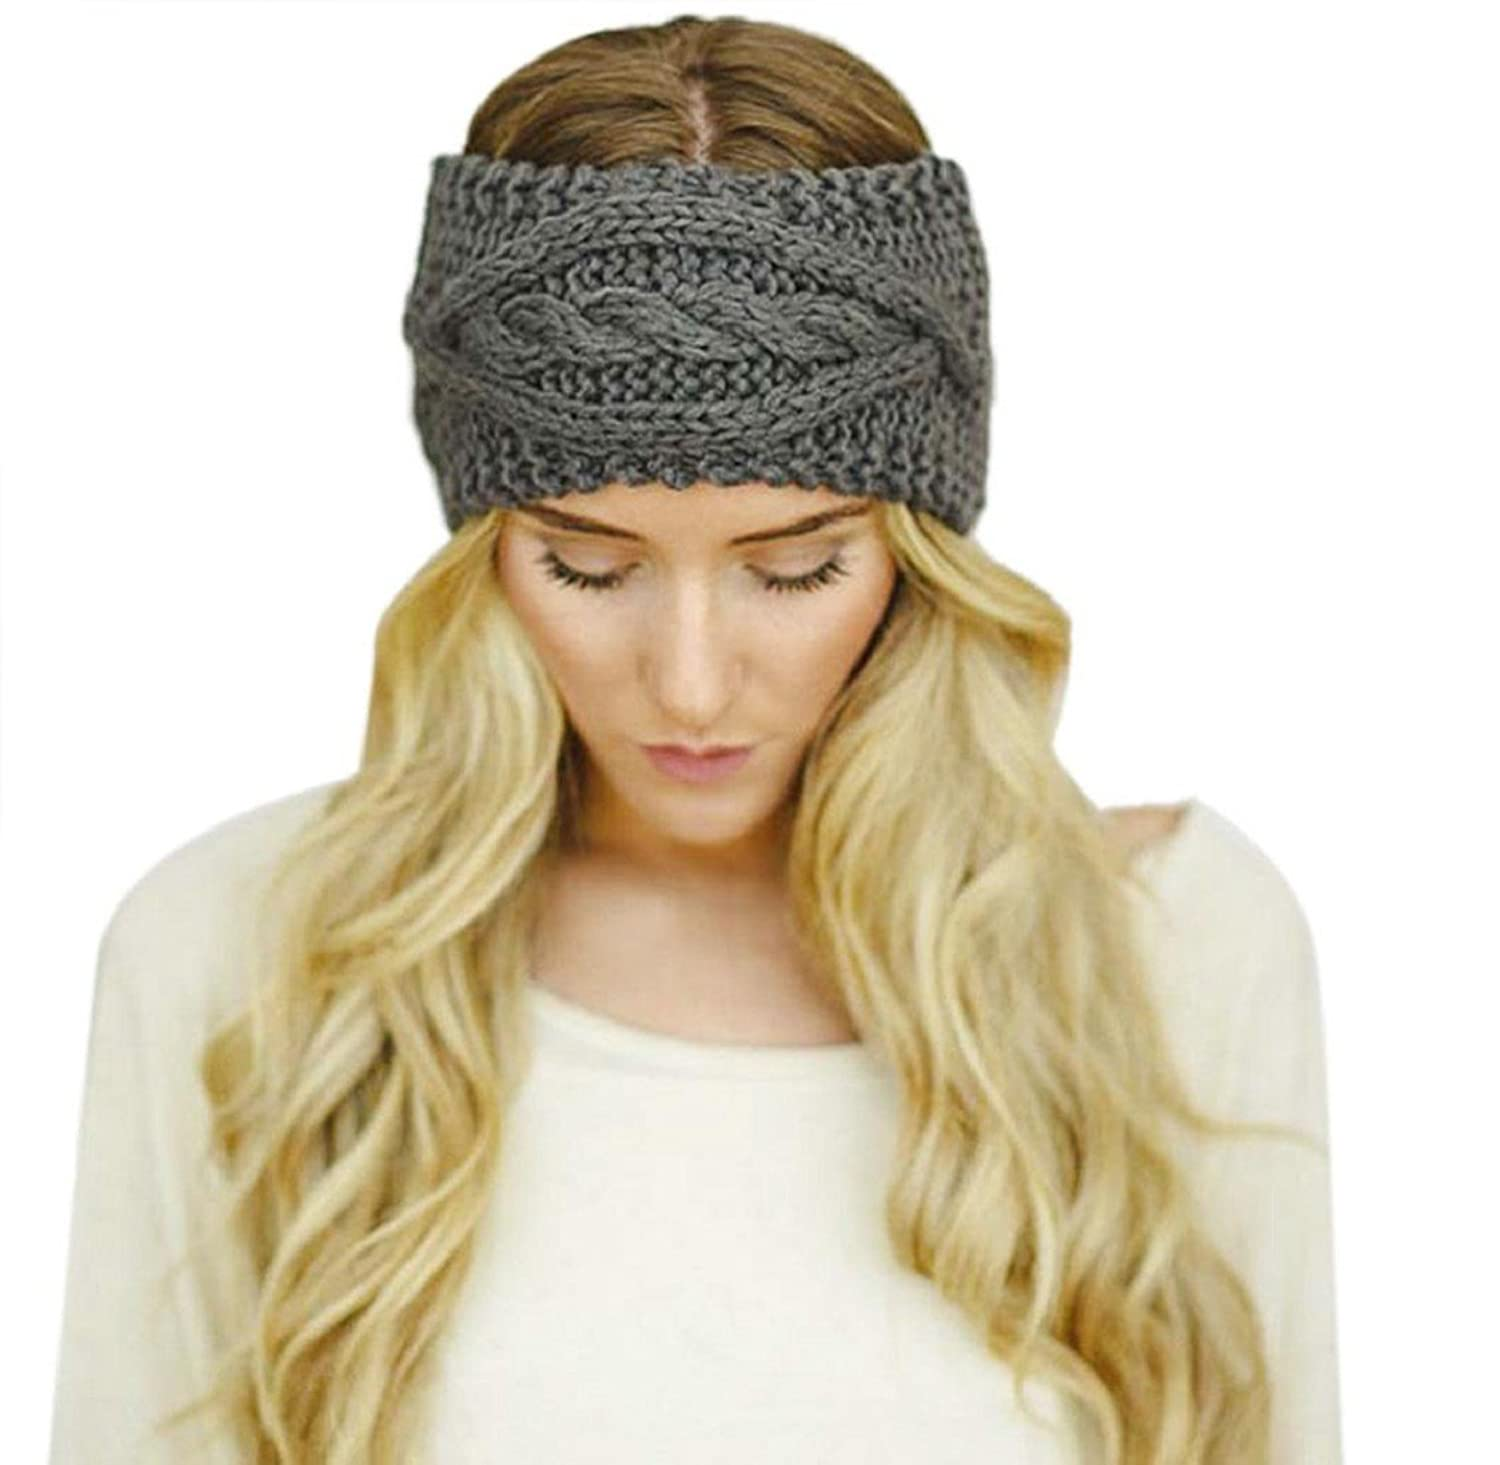 Damen Ski Kappebeanie Stirnband Kolylong headband One Size